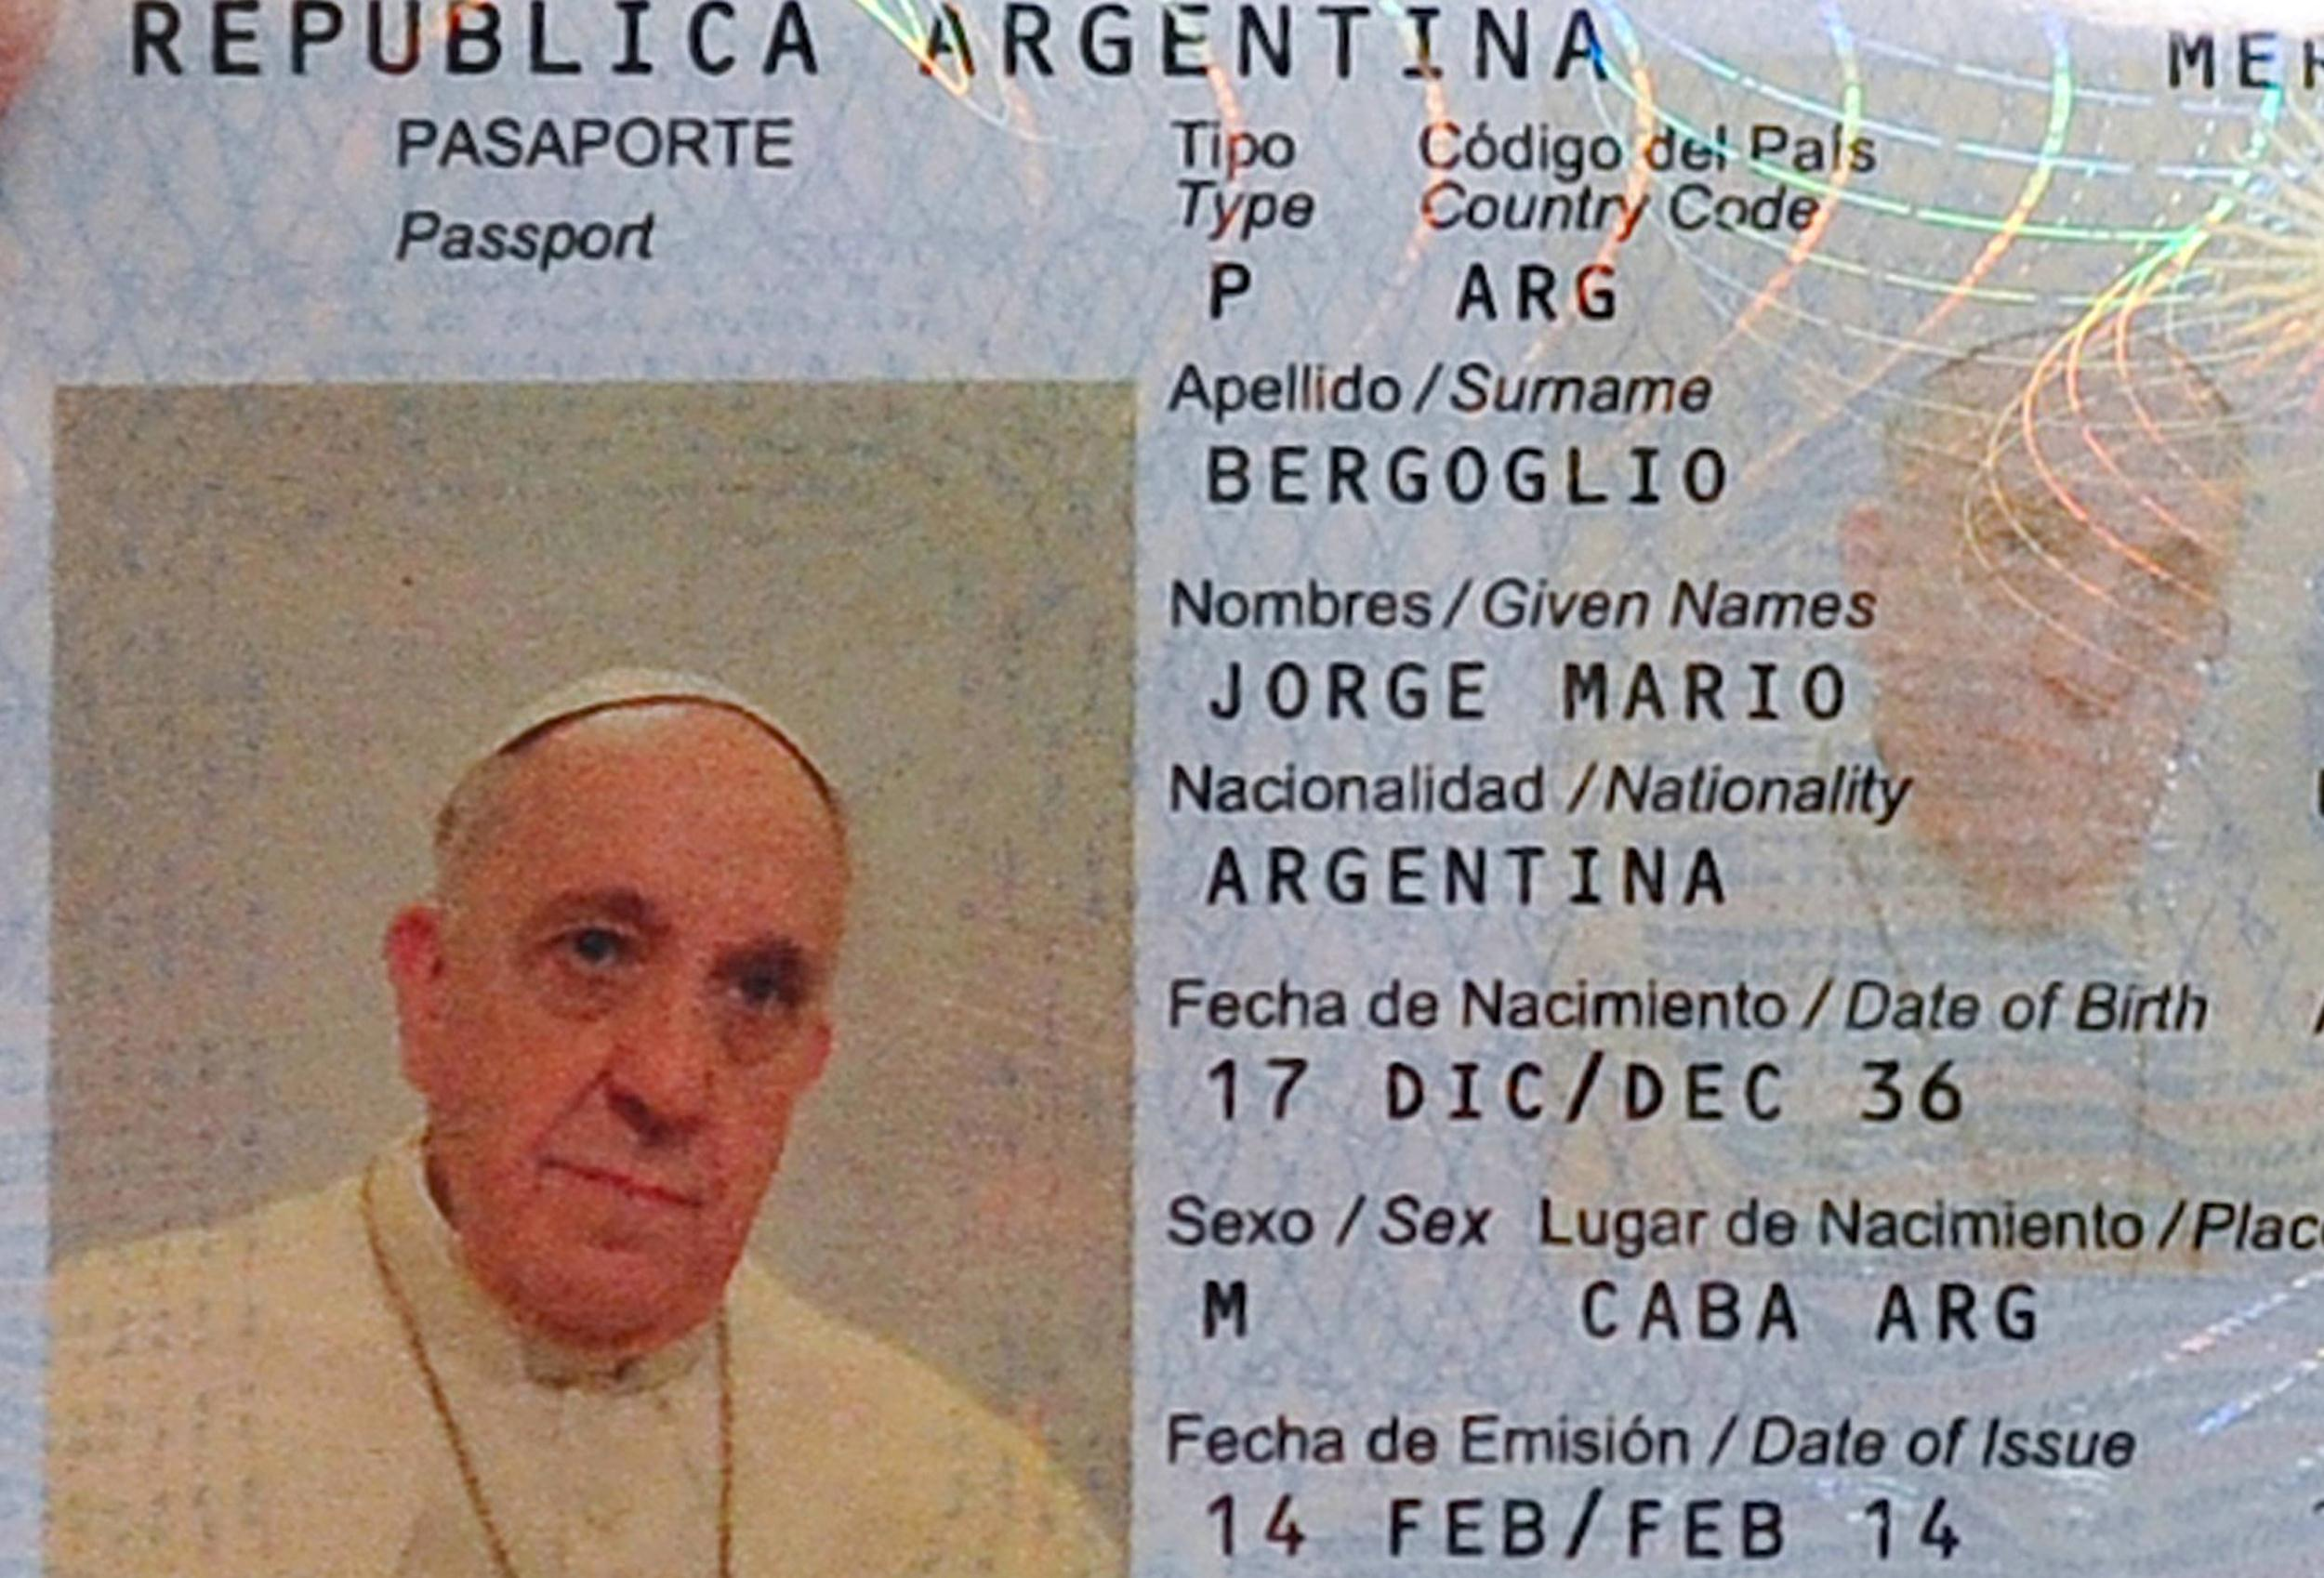 Image: The new passport of Jorge Mario Bergoglio, Pope Francis